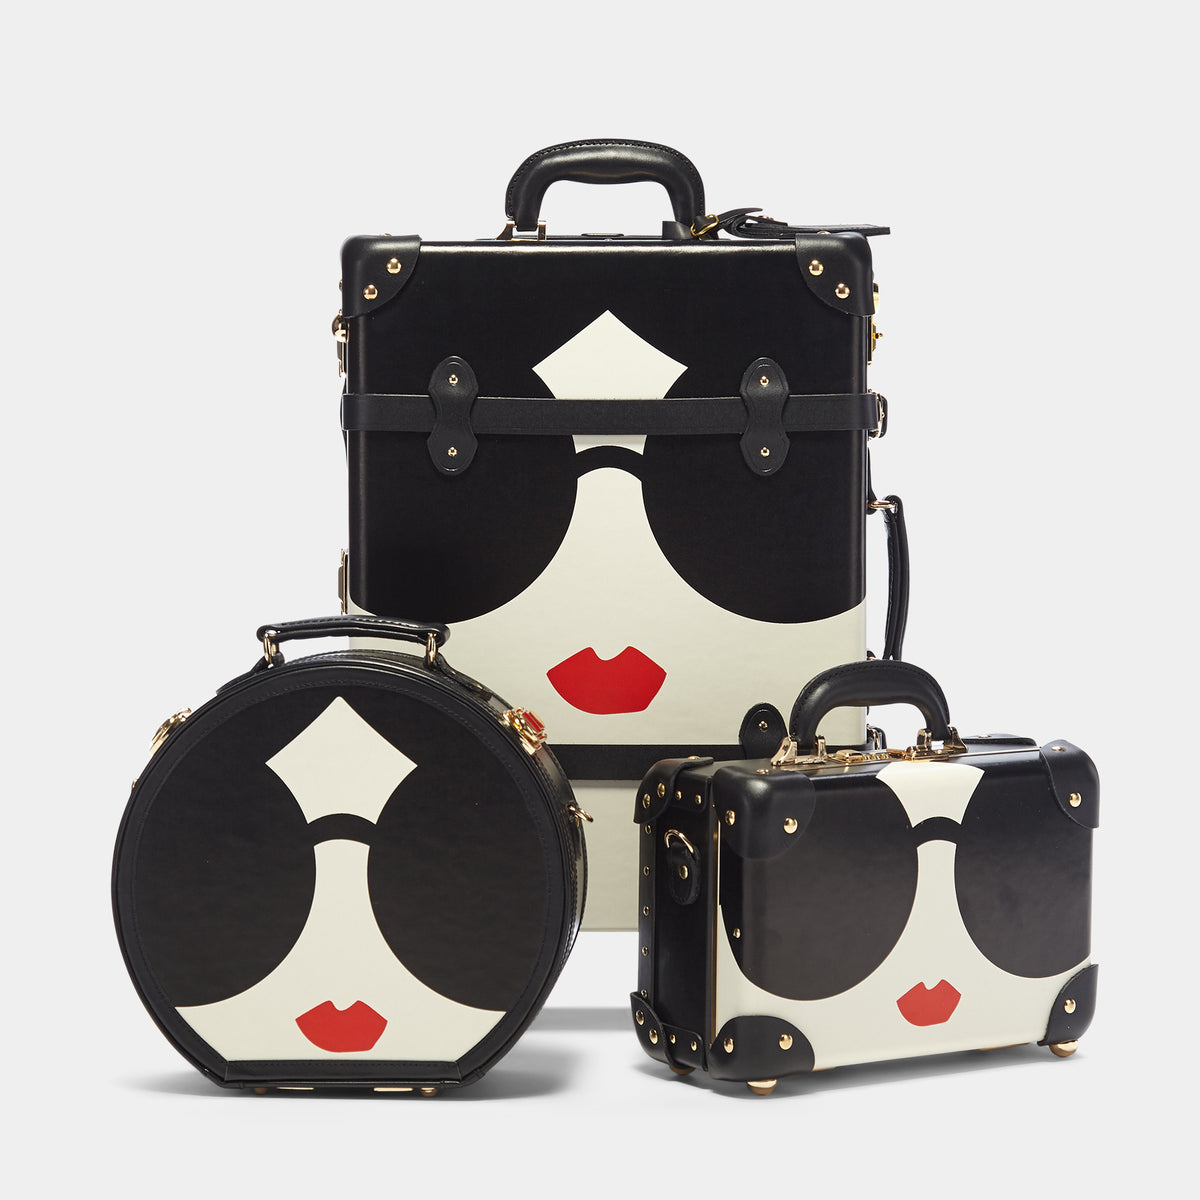 The alice + olivia X SteamLine in Black - Hat Box Luggage - Hat Box with matching cases